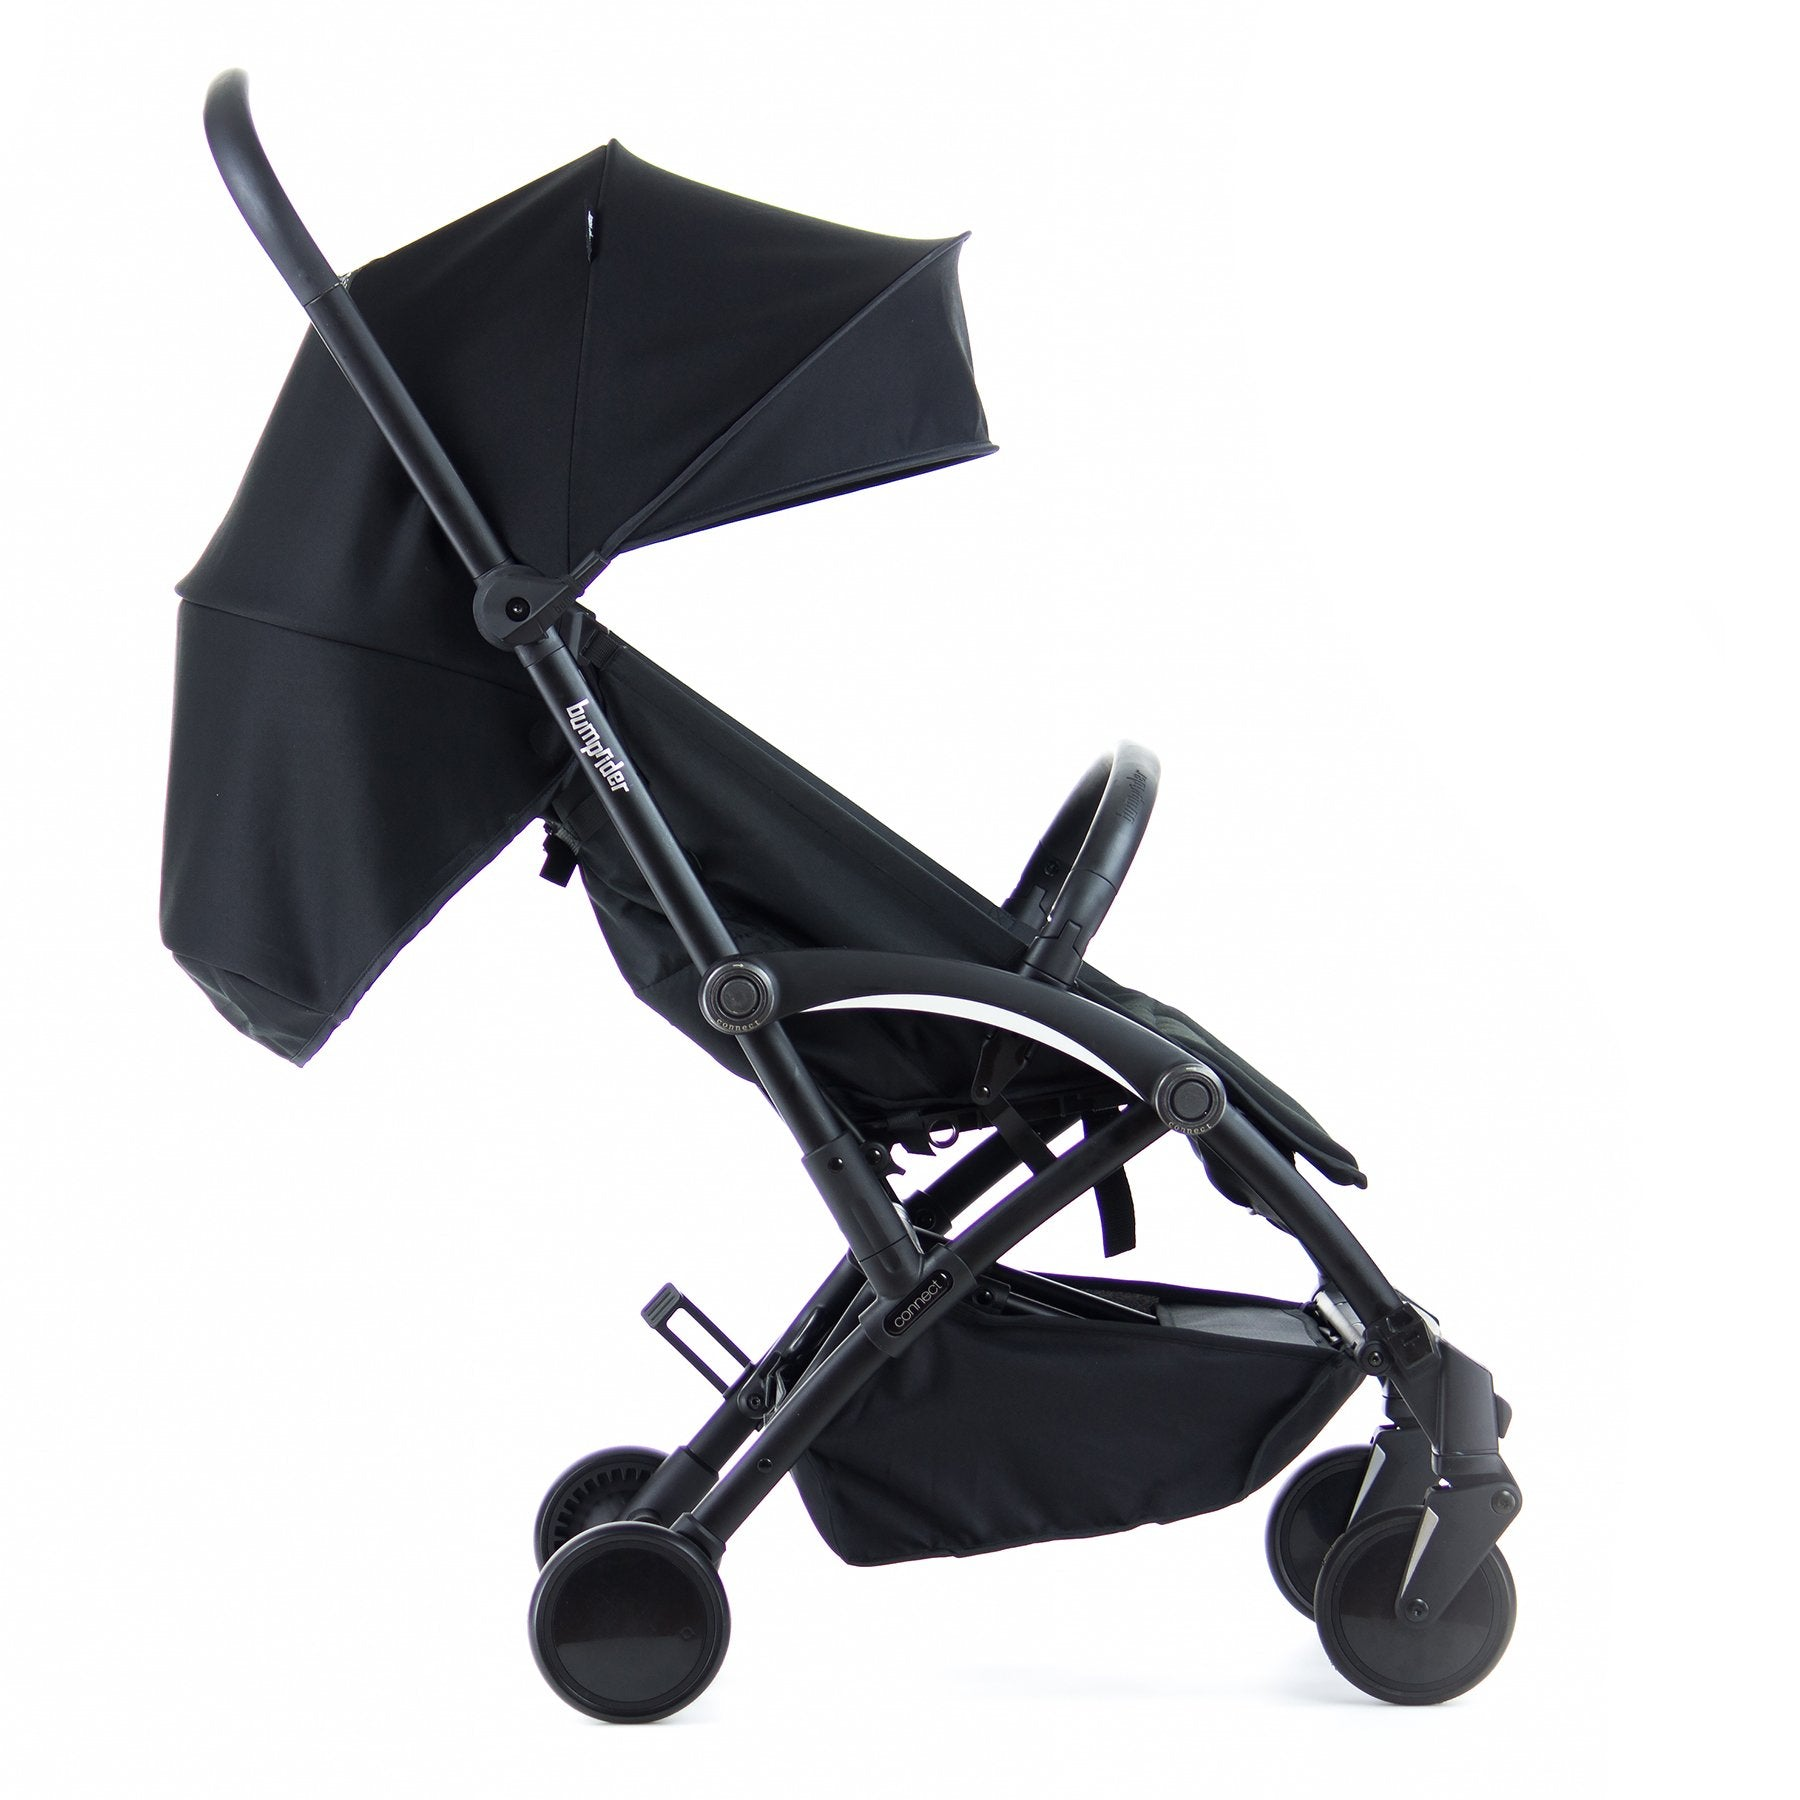 Bumprider Connect Double Stroller